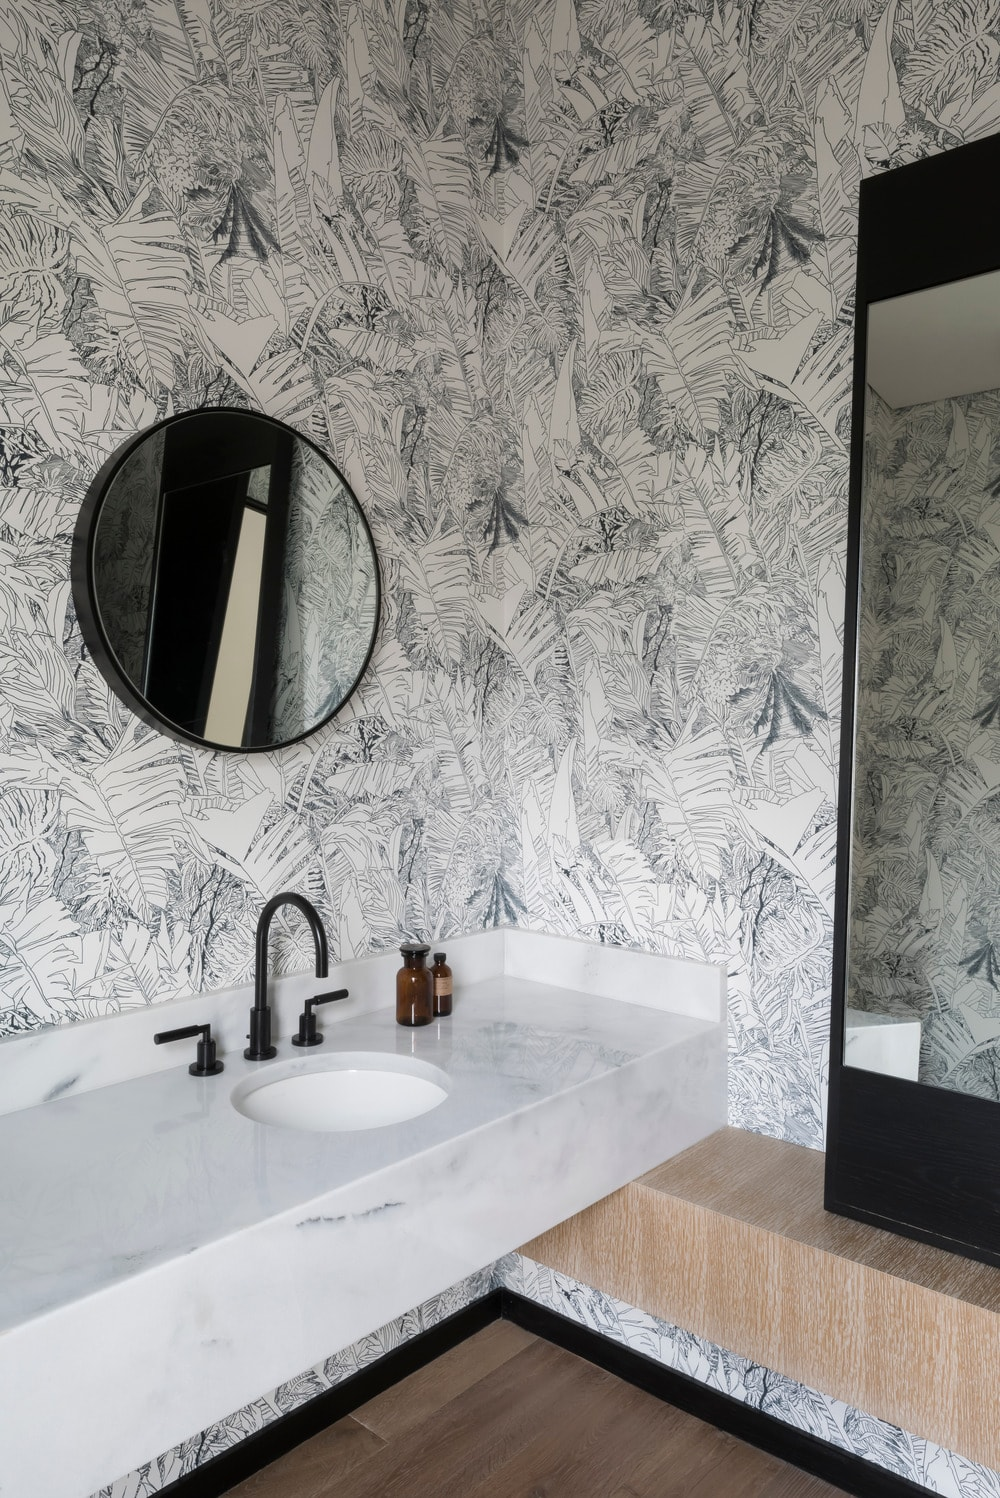 This is a close look at the bathroom vanity with a floating white sink, black fixtures and mirrors. These are then complemented by the surrounding wallpaper of palm leaves.